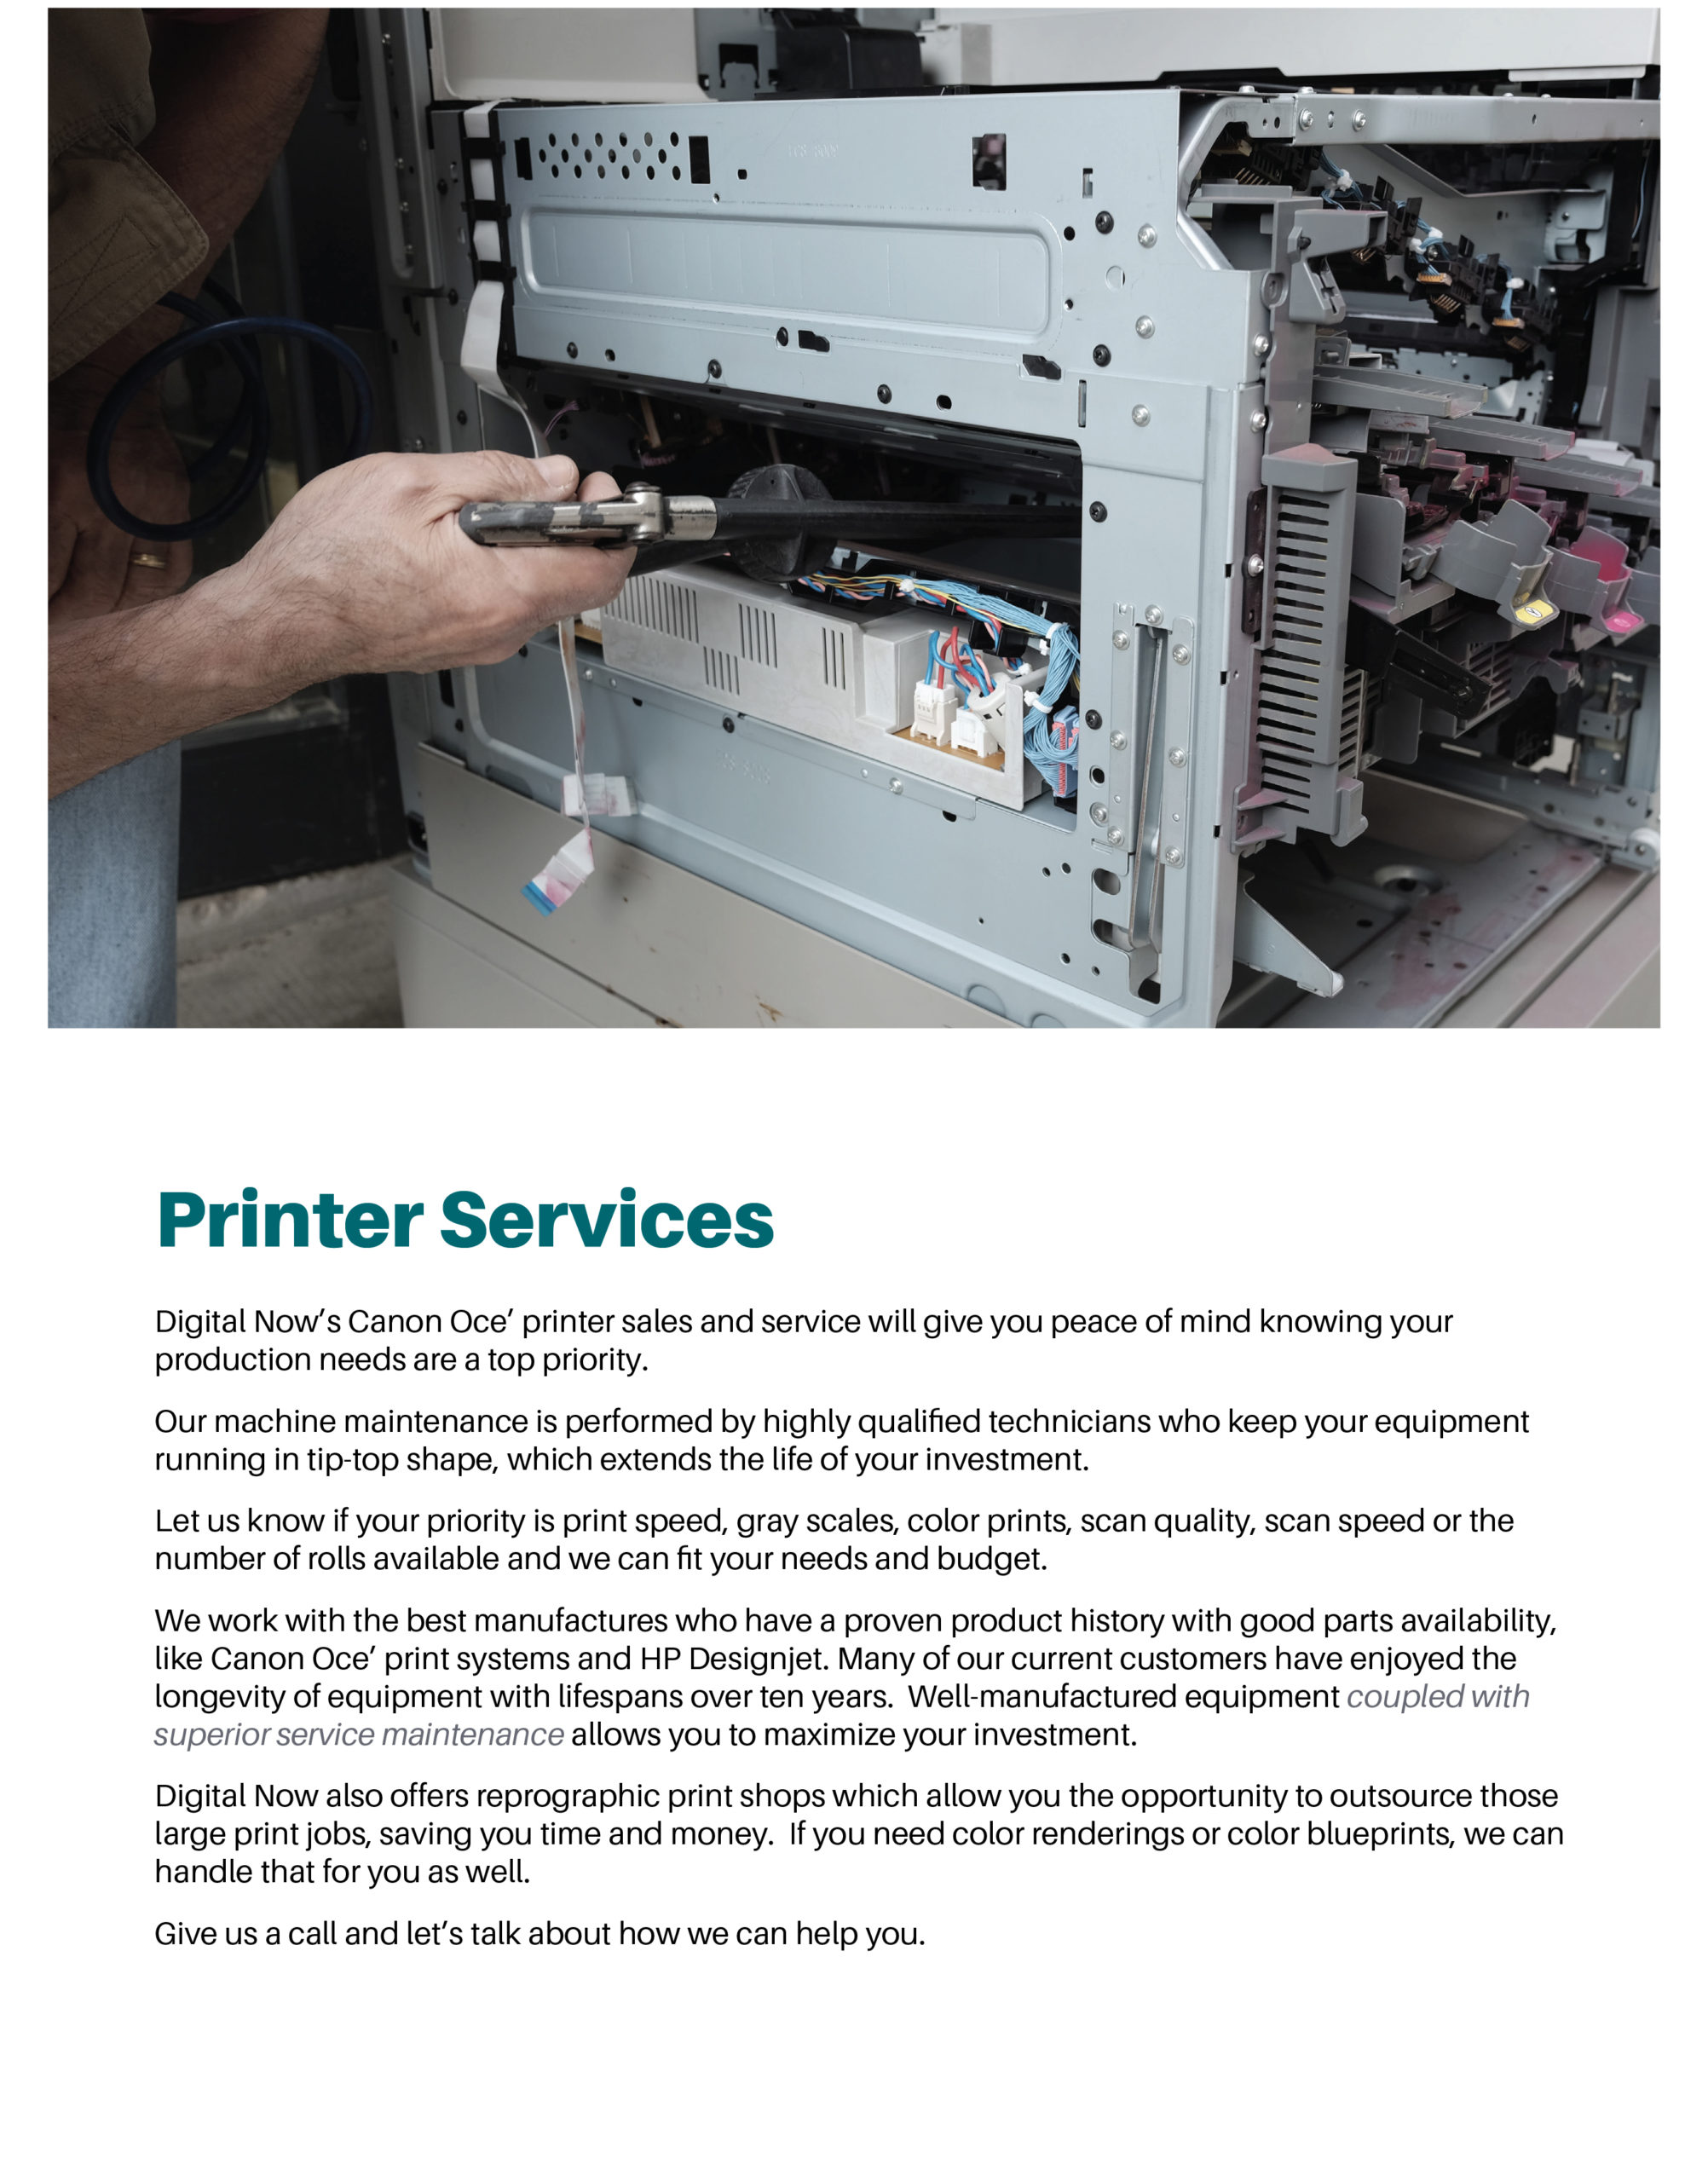 Page featuring details on printer services